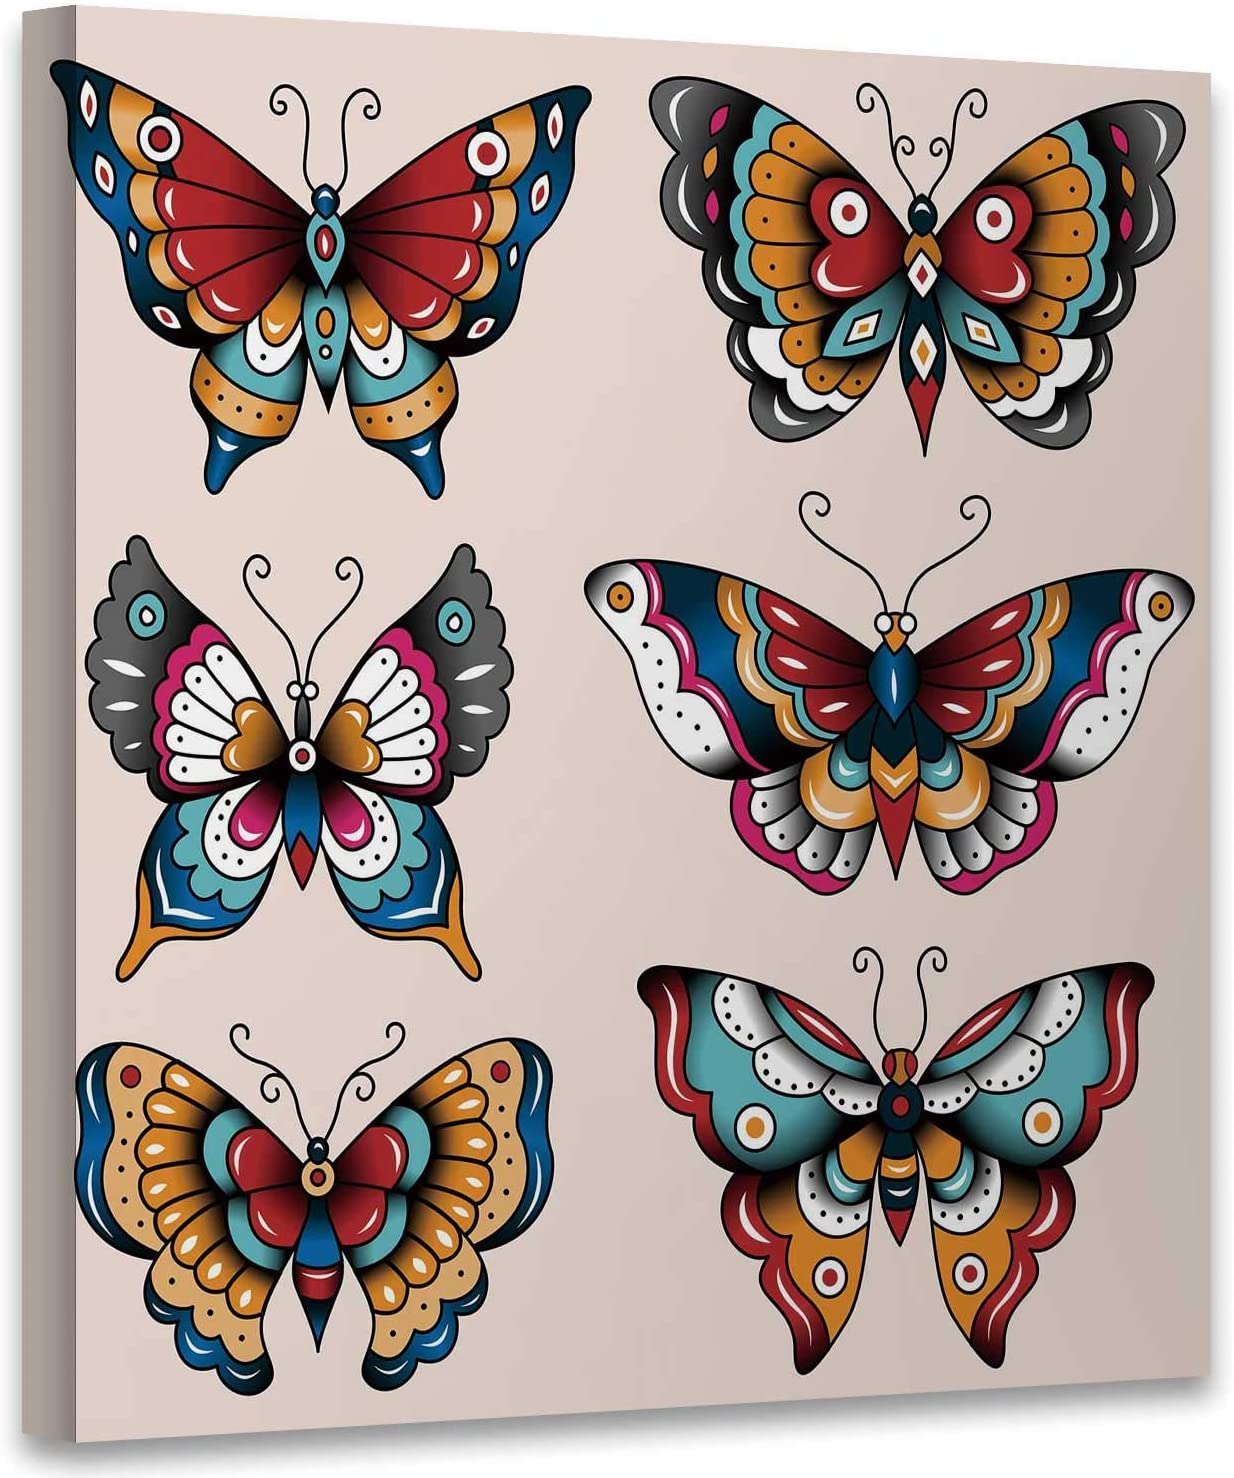 Hitecera Set of Old School Tattoo Art Butterflies for Design and Decoration,Canvas Wall Art Canvas Printed Painting Bedroom Wall Decor 12x12 Inches